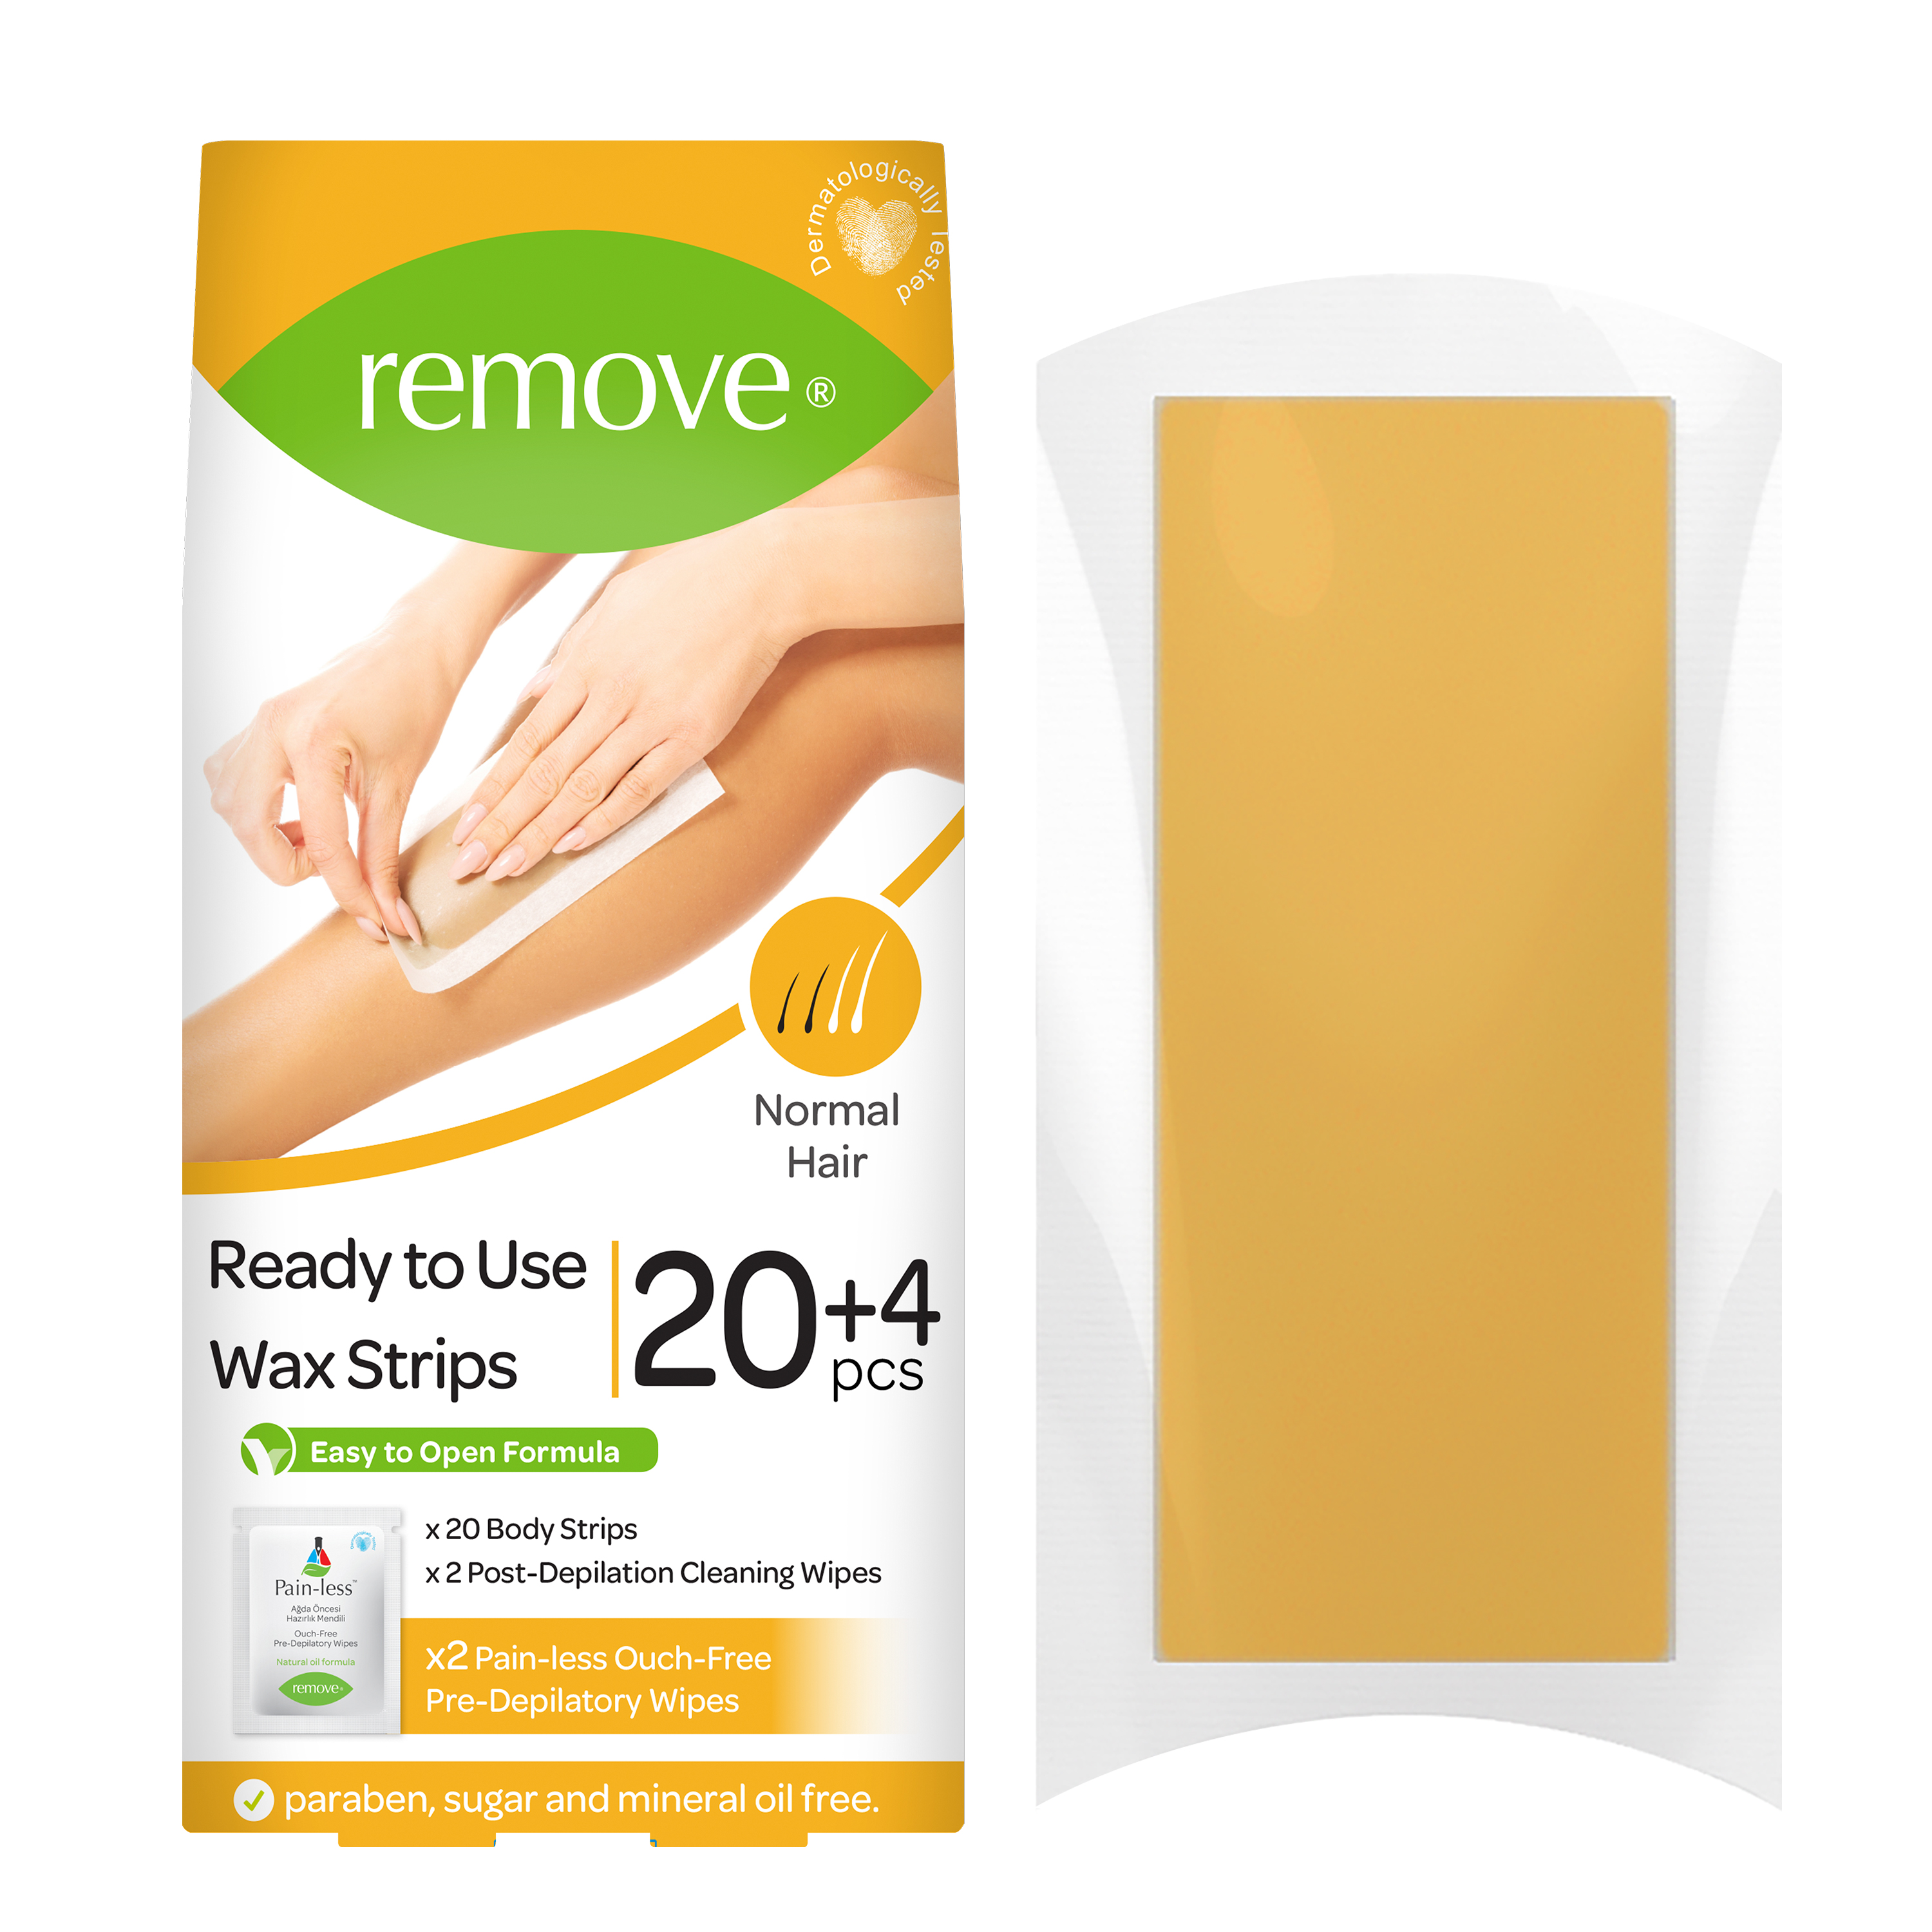 REMOVE | Remove Wax Strips 24 Pcs Body Strips - Normal Hair (20 Body Strips & 2 Pain-Less + 4 Post Depilation Cleaning Wipes)